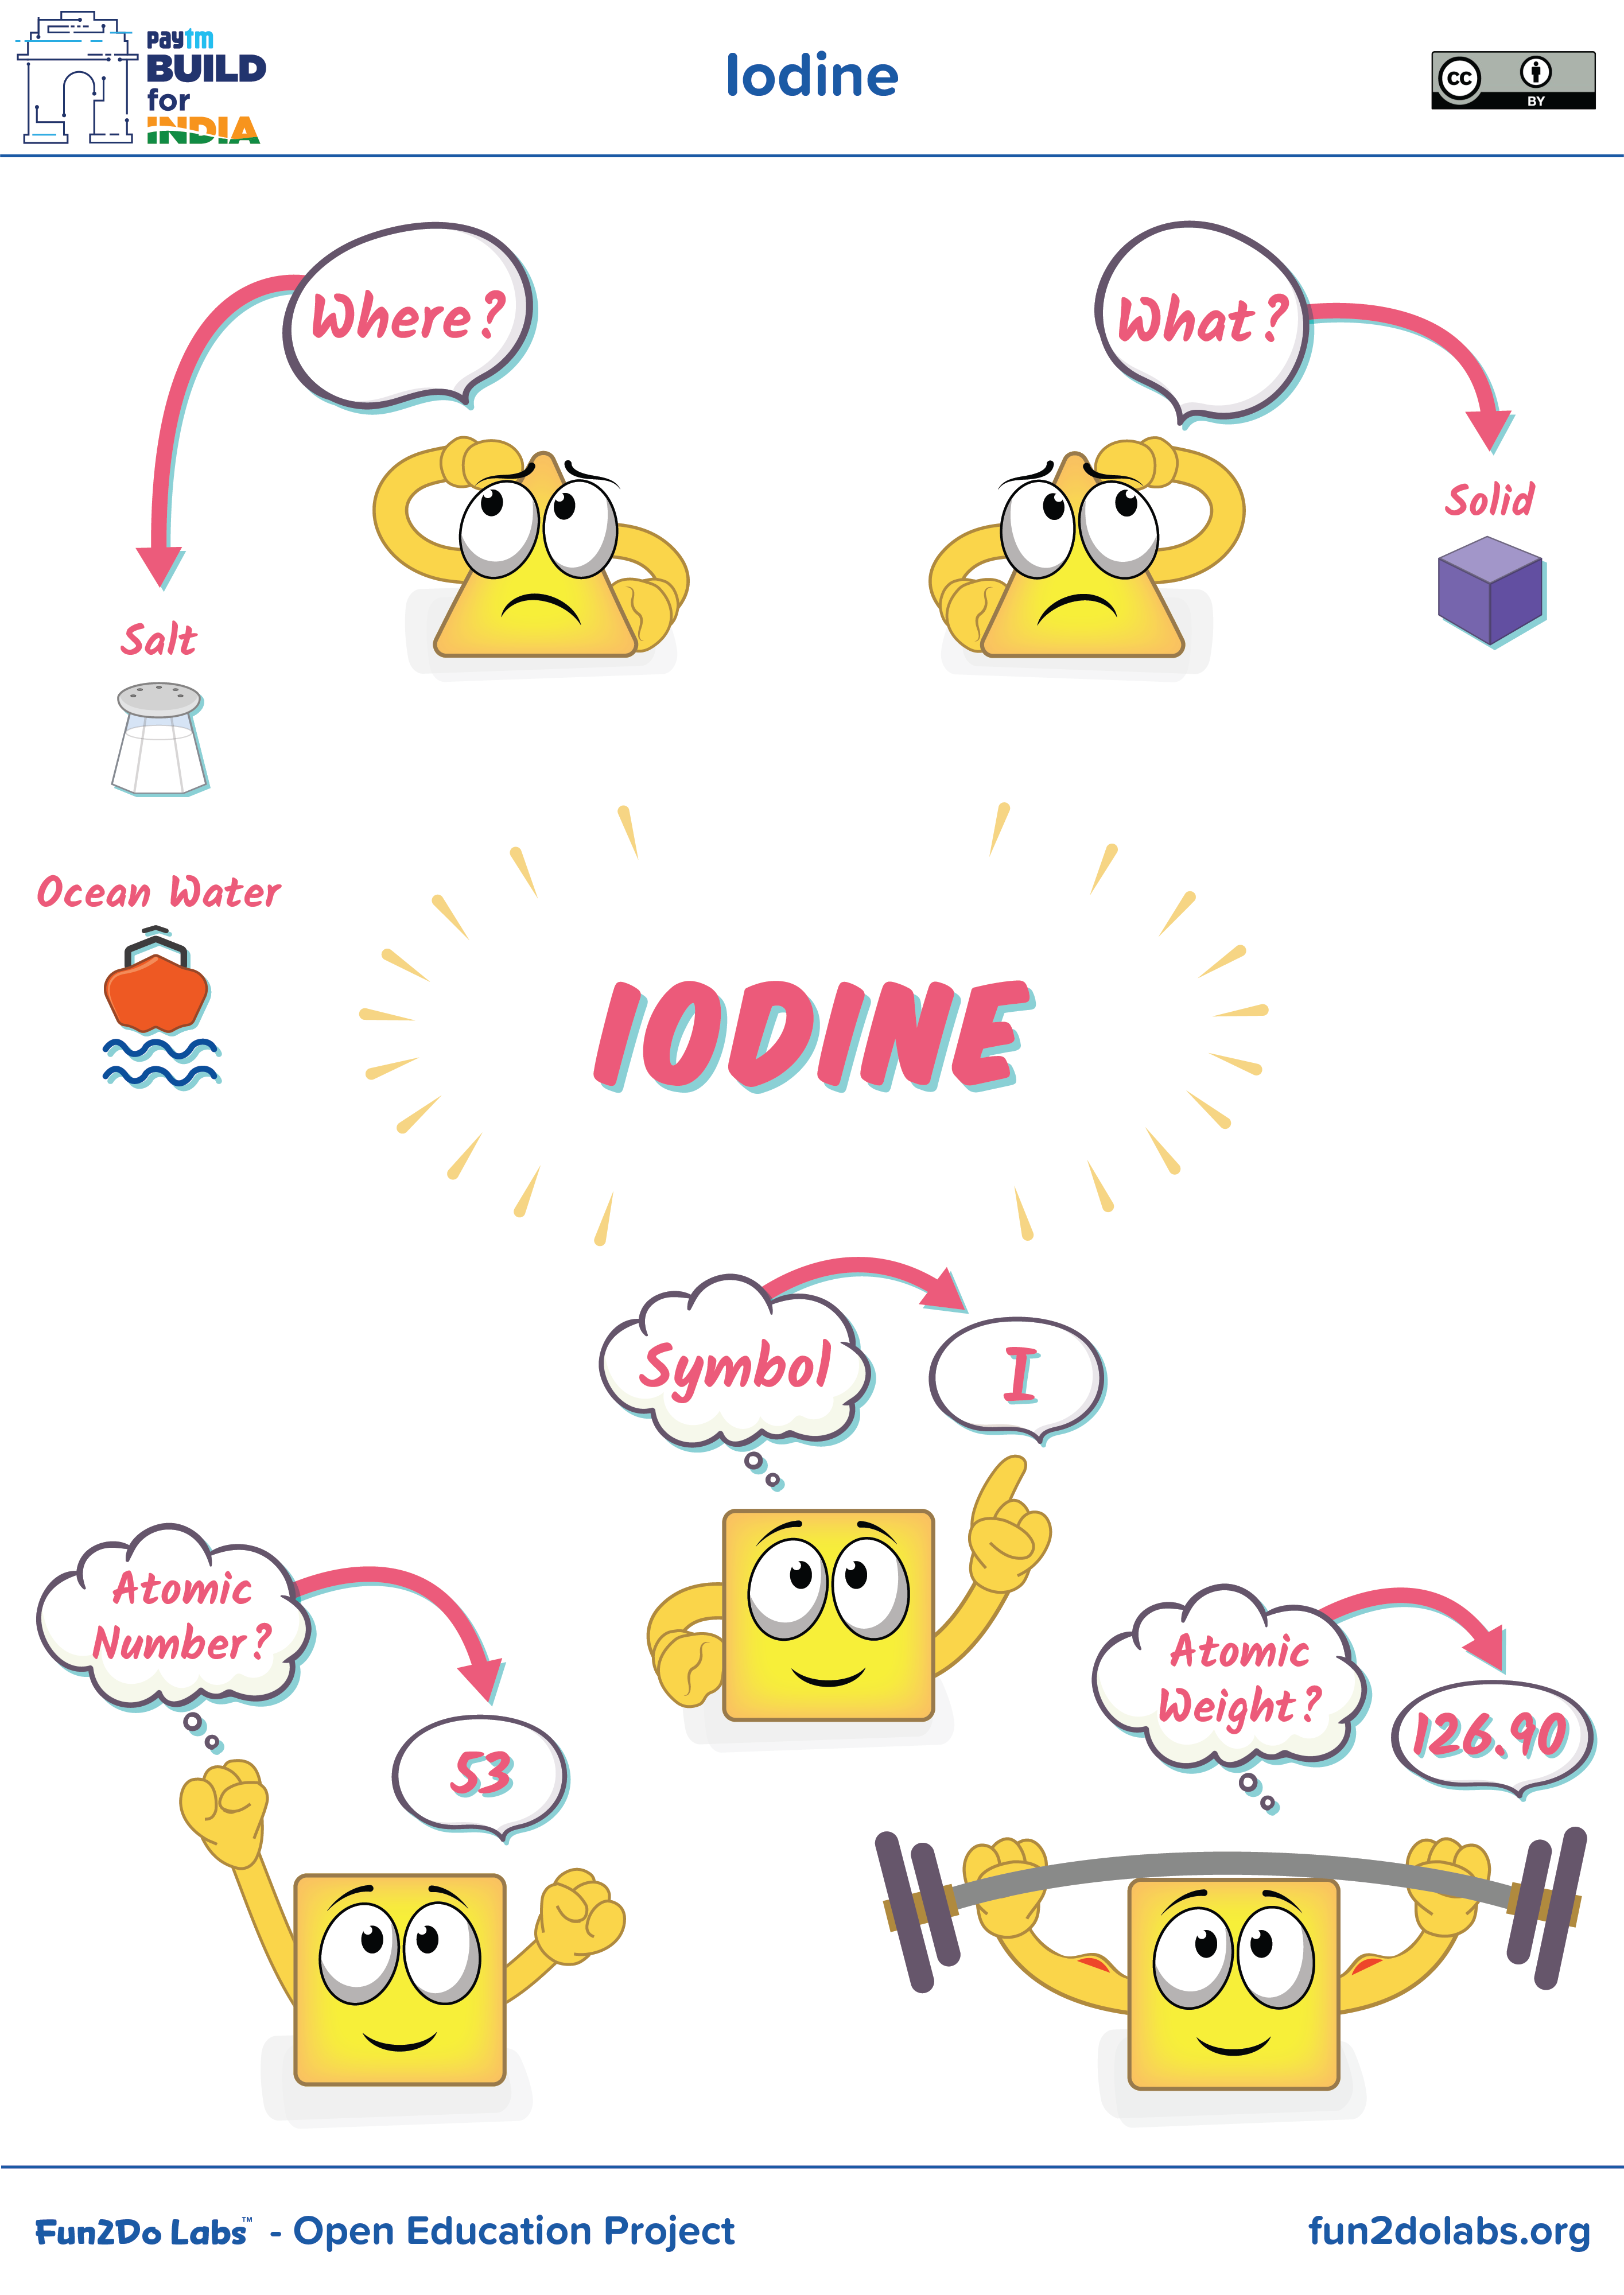 You Can Use This Image For Introducing Iodine To Kids Where Is